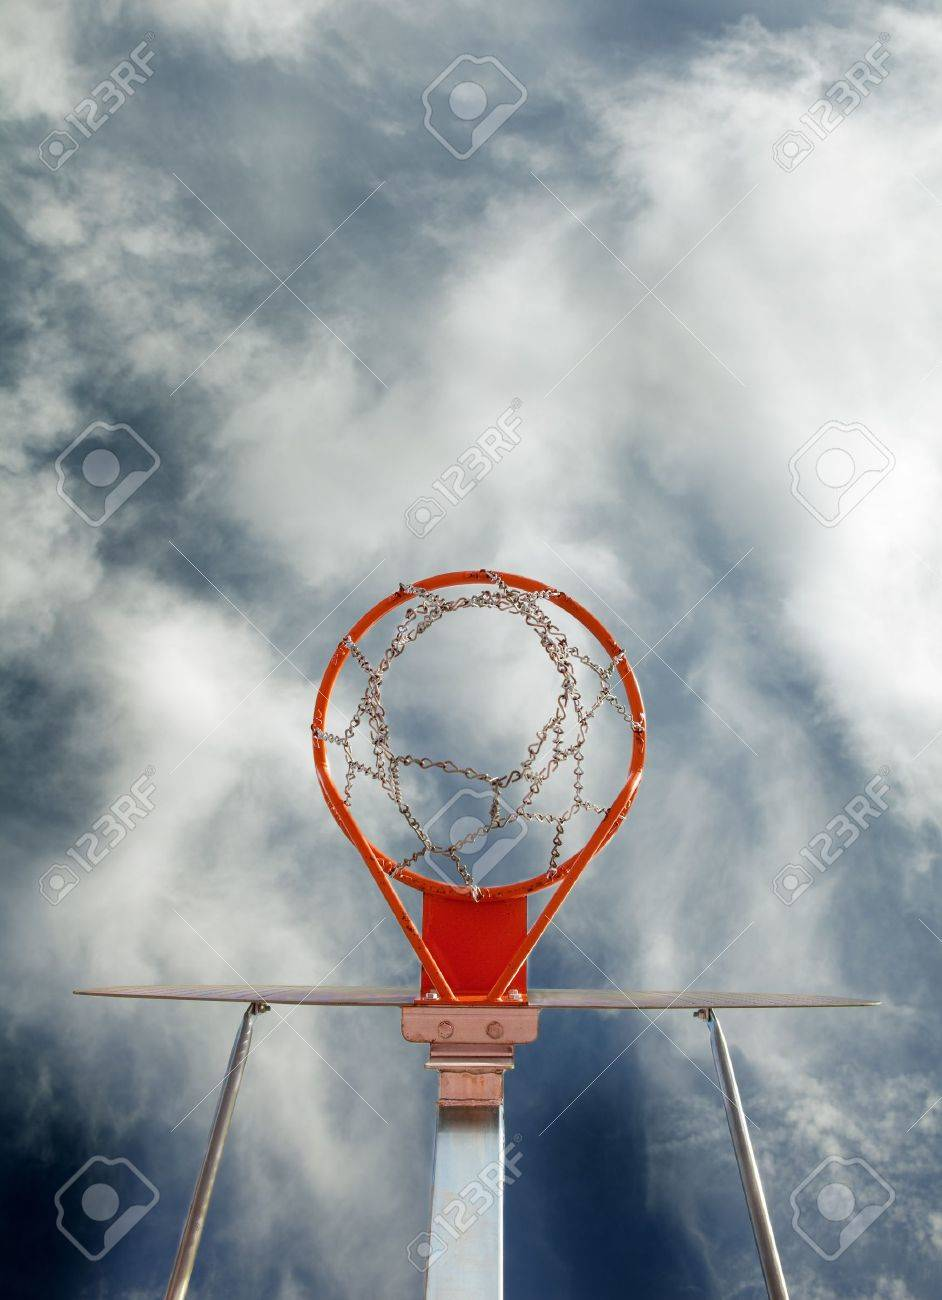 abstract image of basketball goal against the sky stock photo